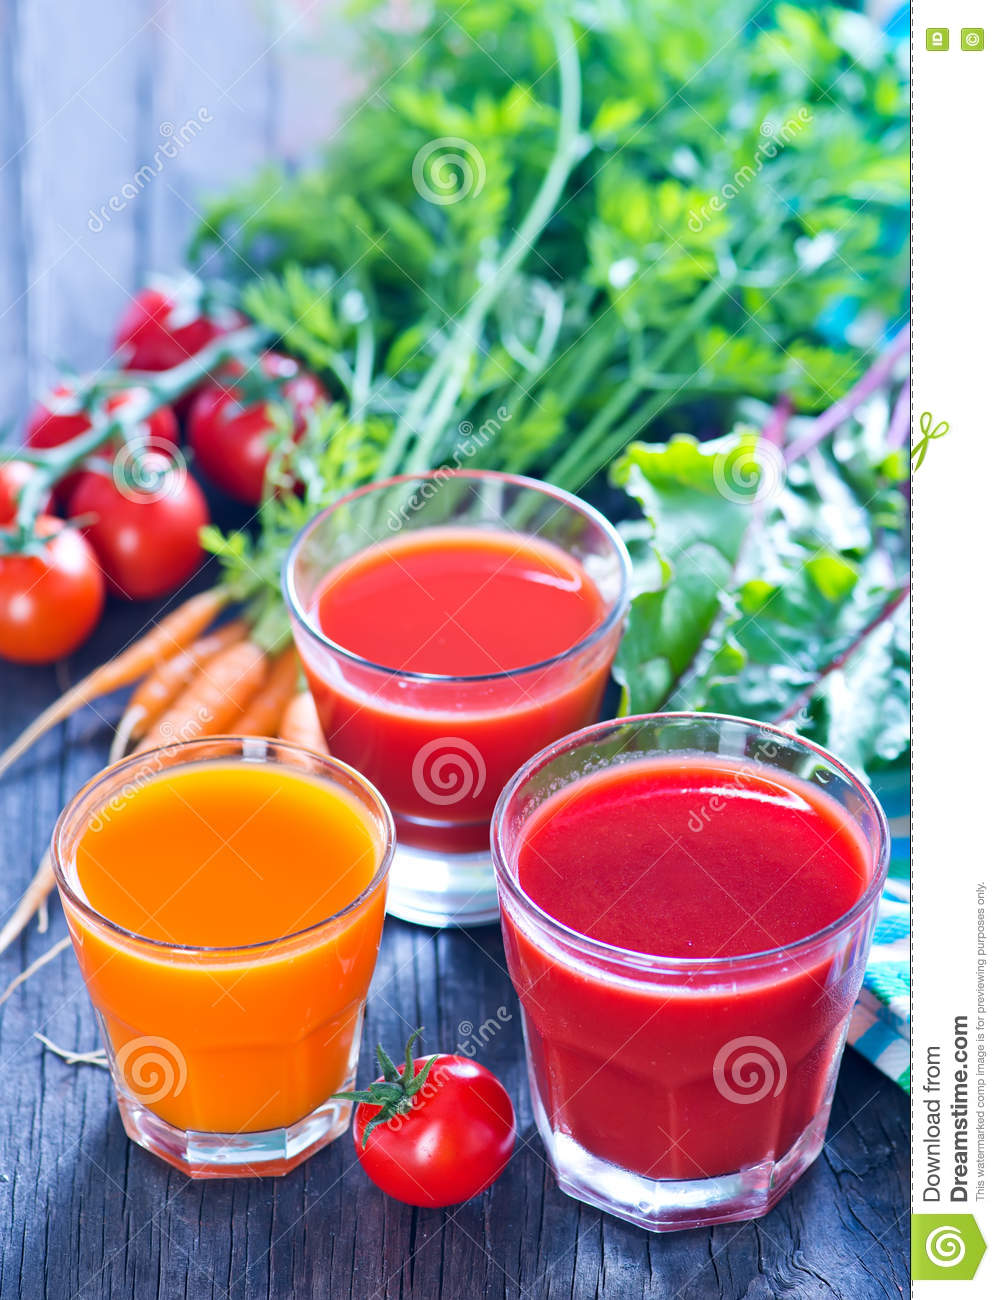 Download Vegetable сок стоковое фото. изображение насчитывающей здоровье - 72292838